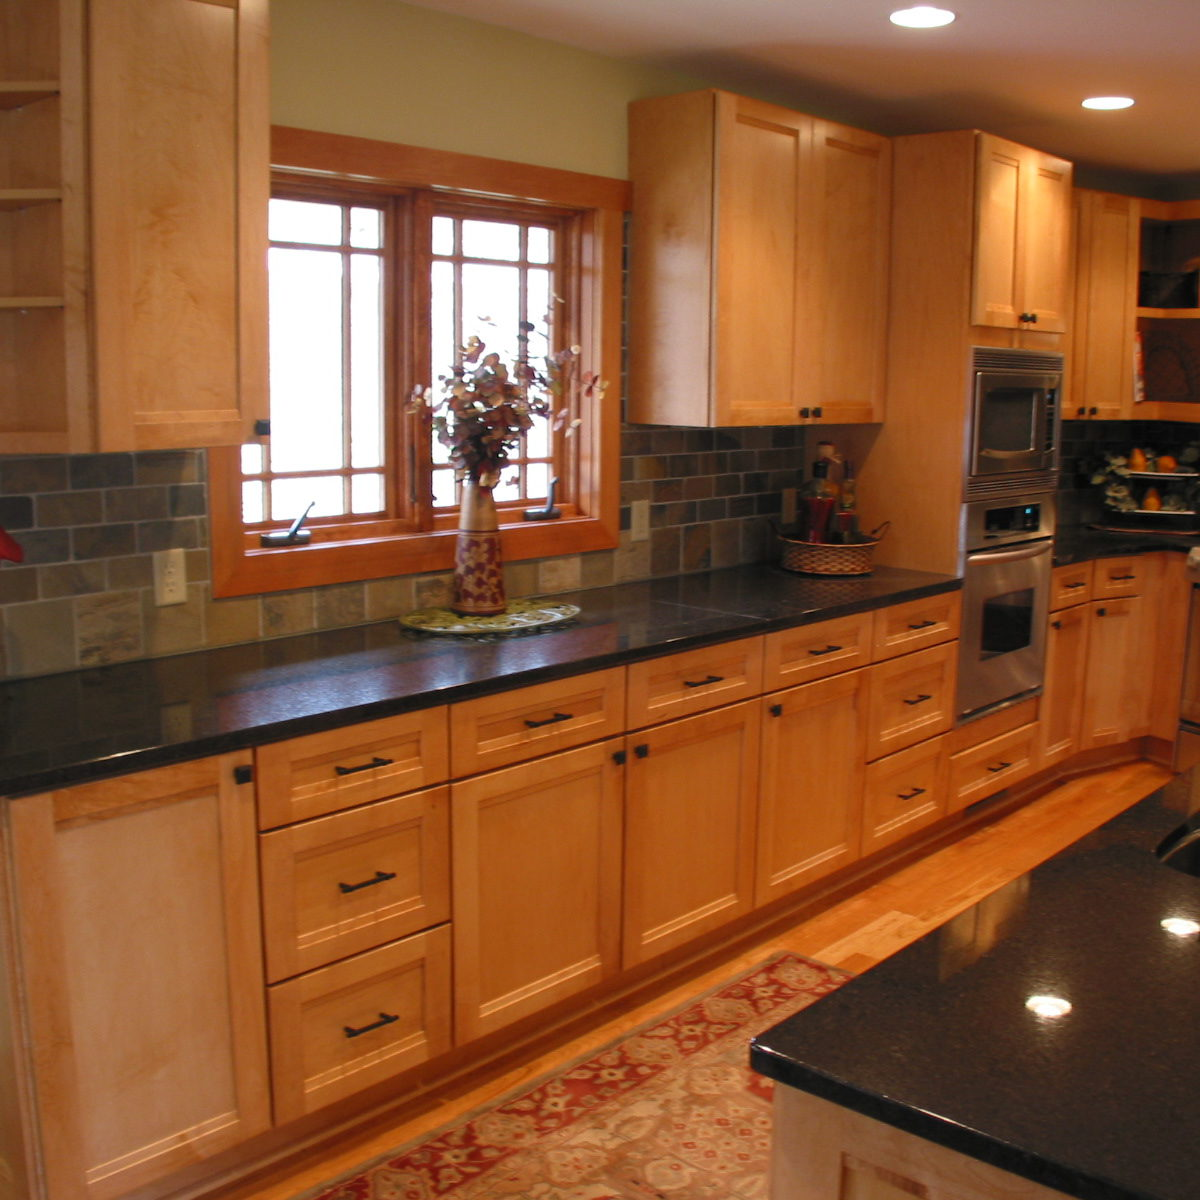 Whole Builders kitchen remodel